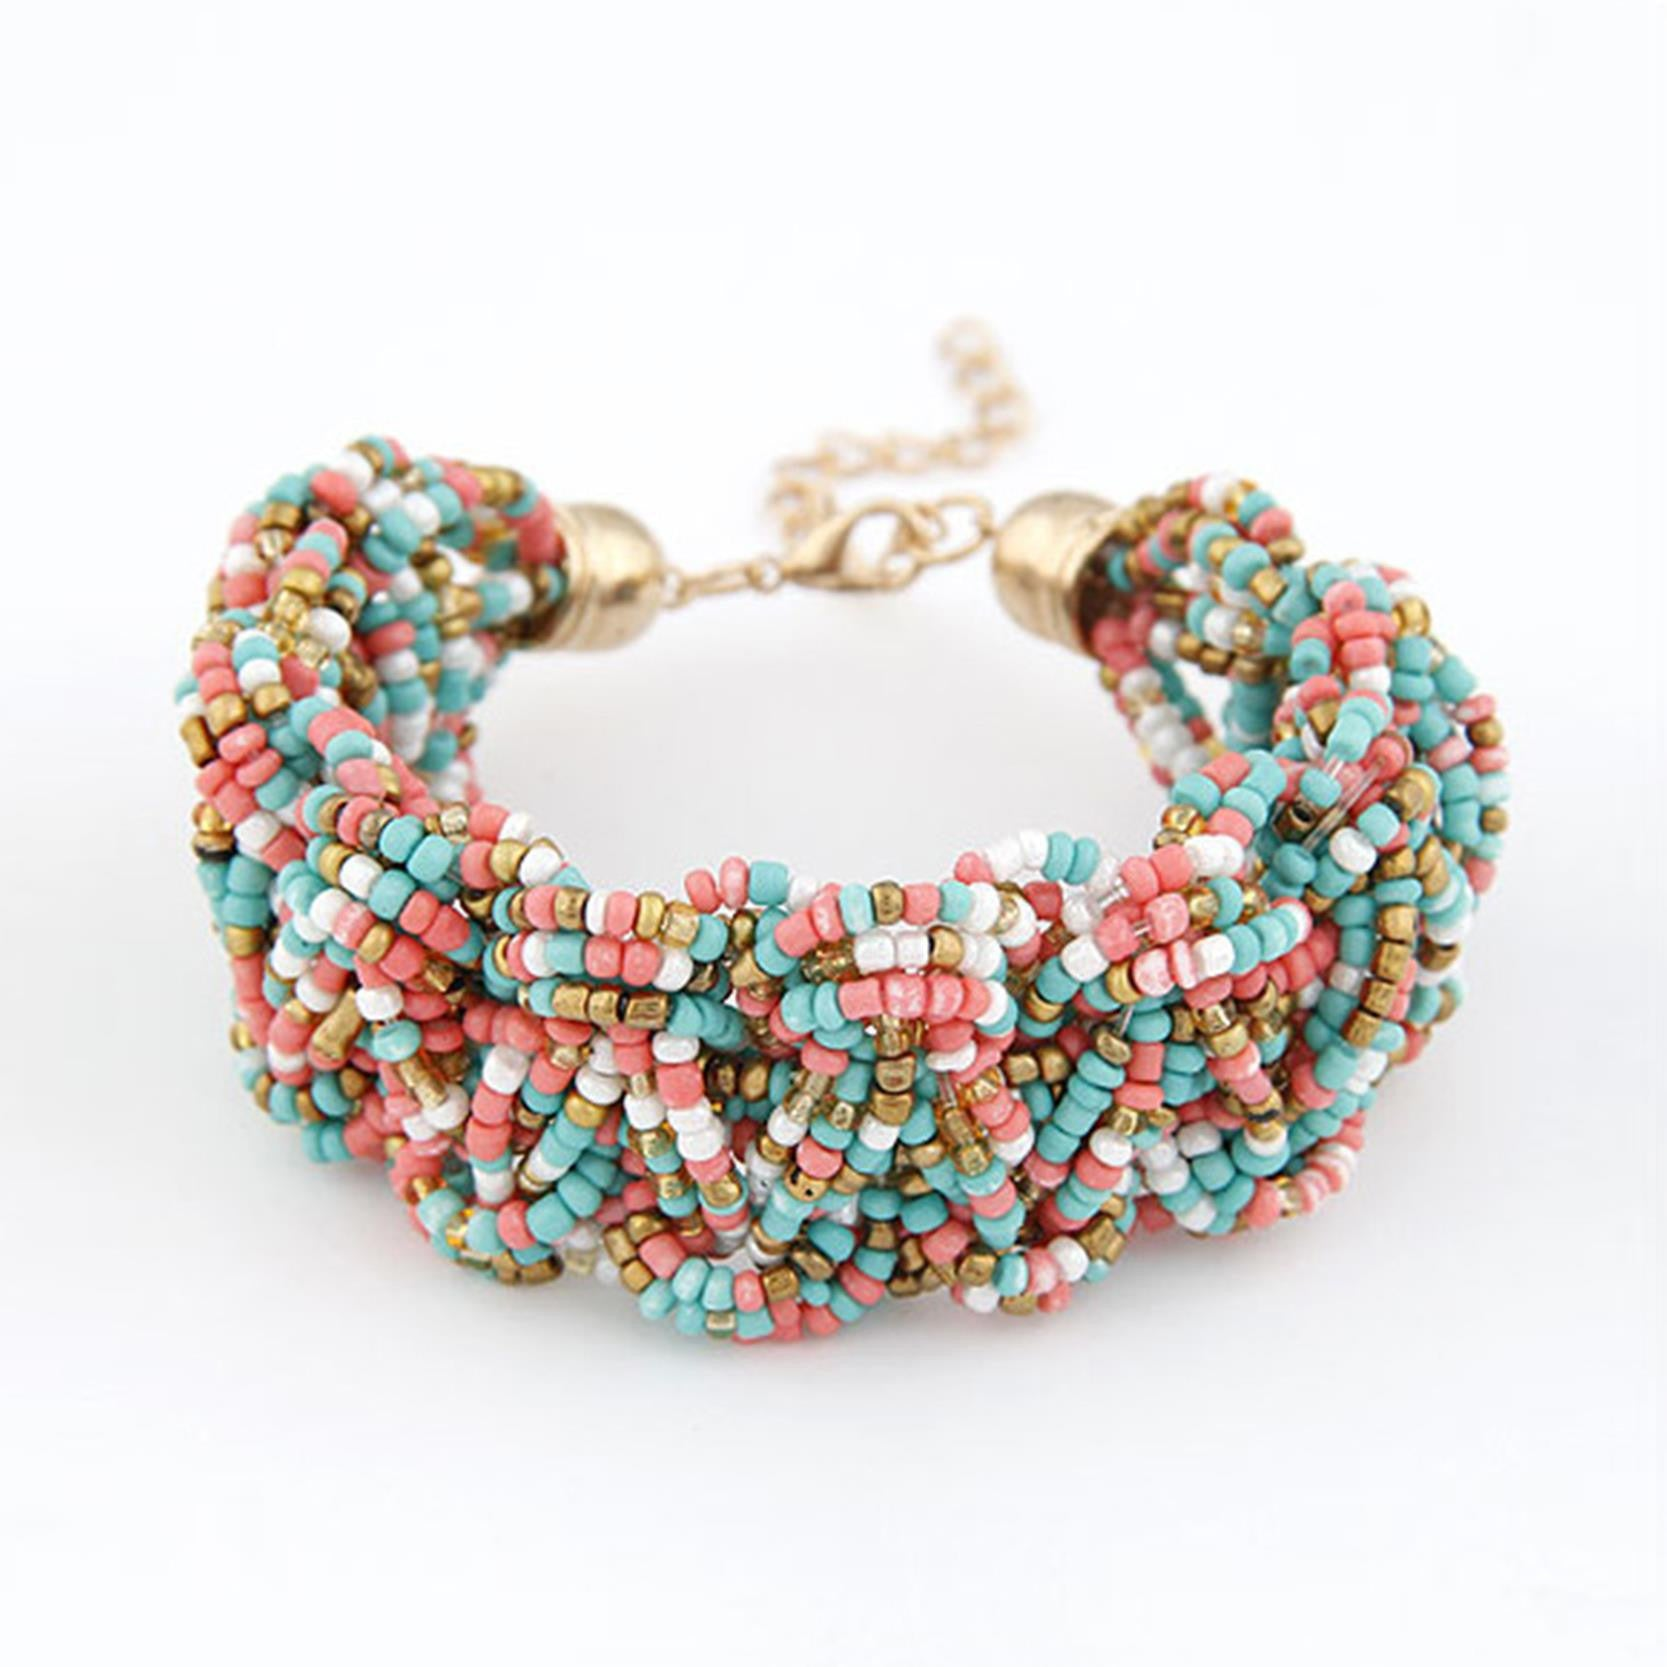 crystal for clasps characteristics hims chinese bracelet made chain ring ladies retro and spring multicolored hand multi circ simple product accessories from